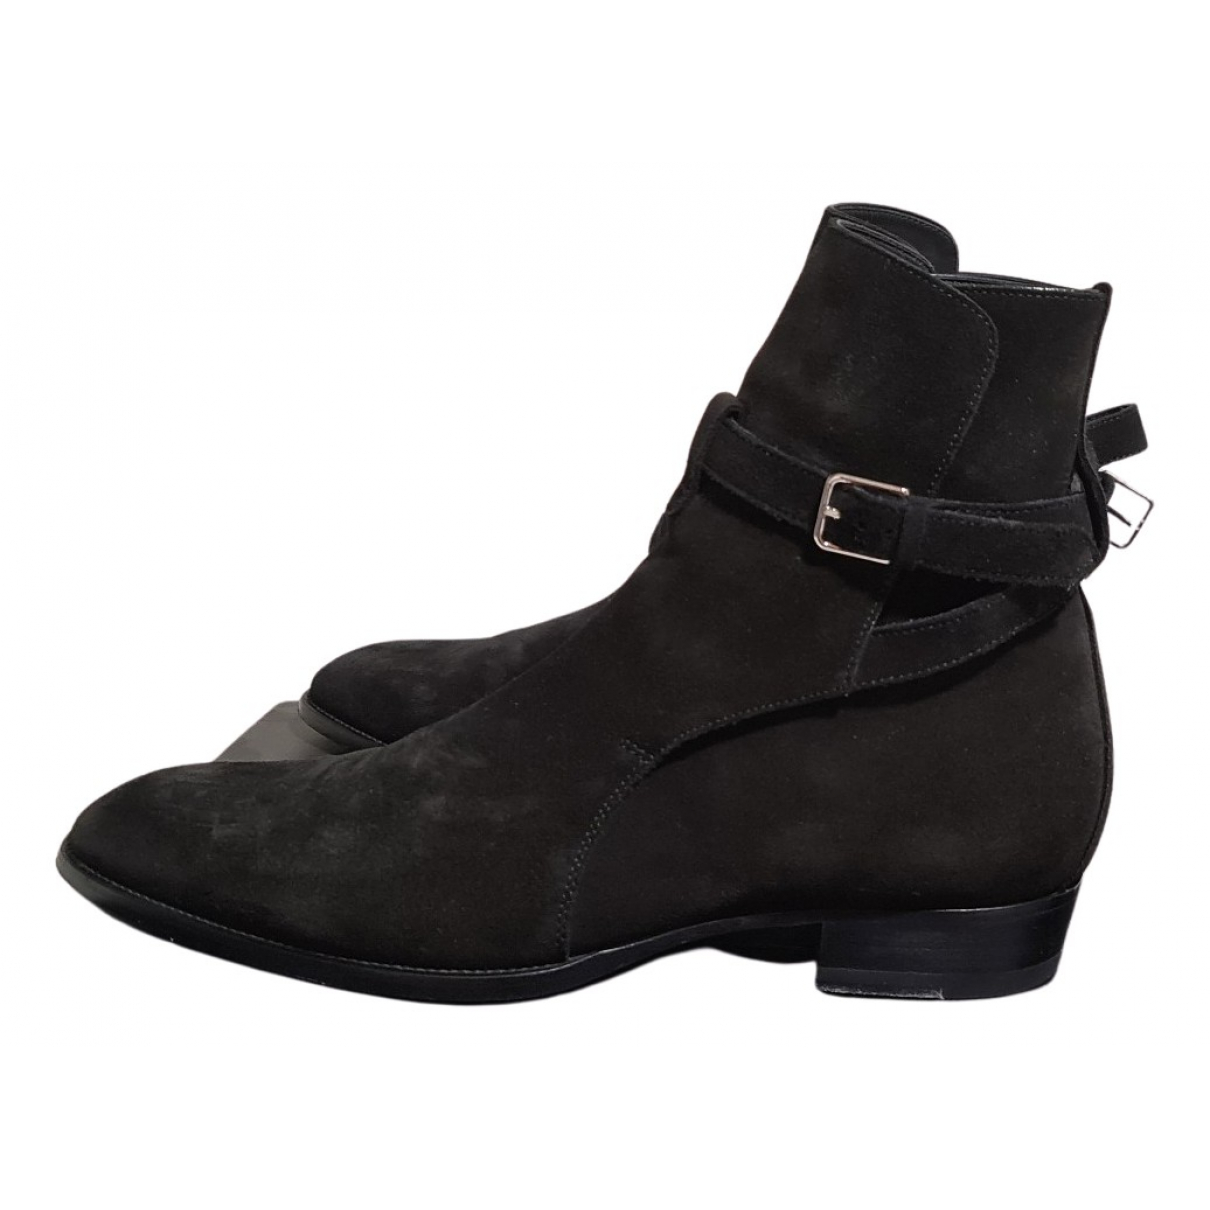 Saint Laurent Wyatt Jodphur Stiefel in  Schwarz Veloursleder